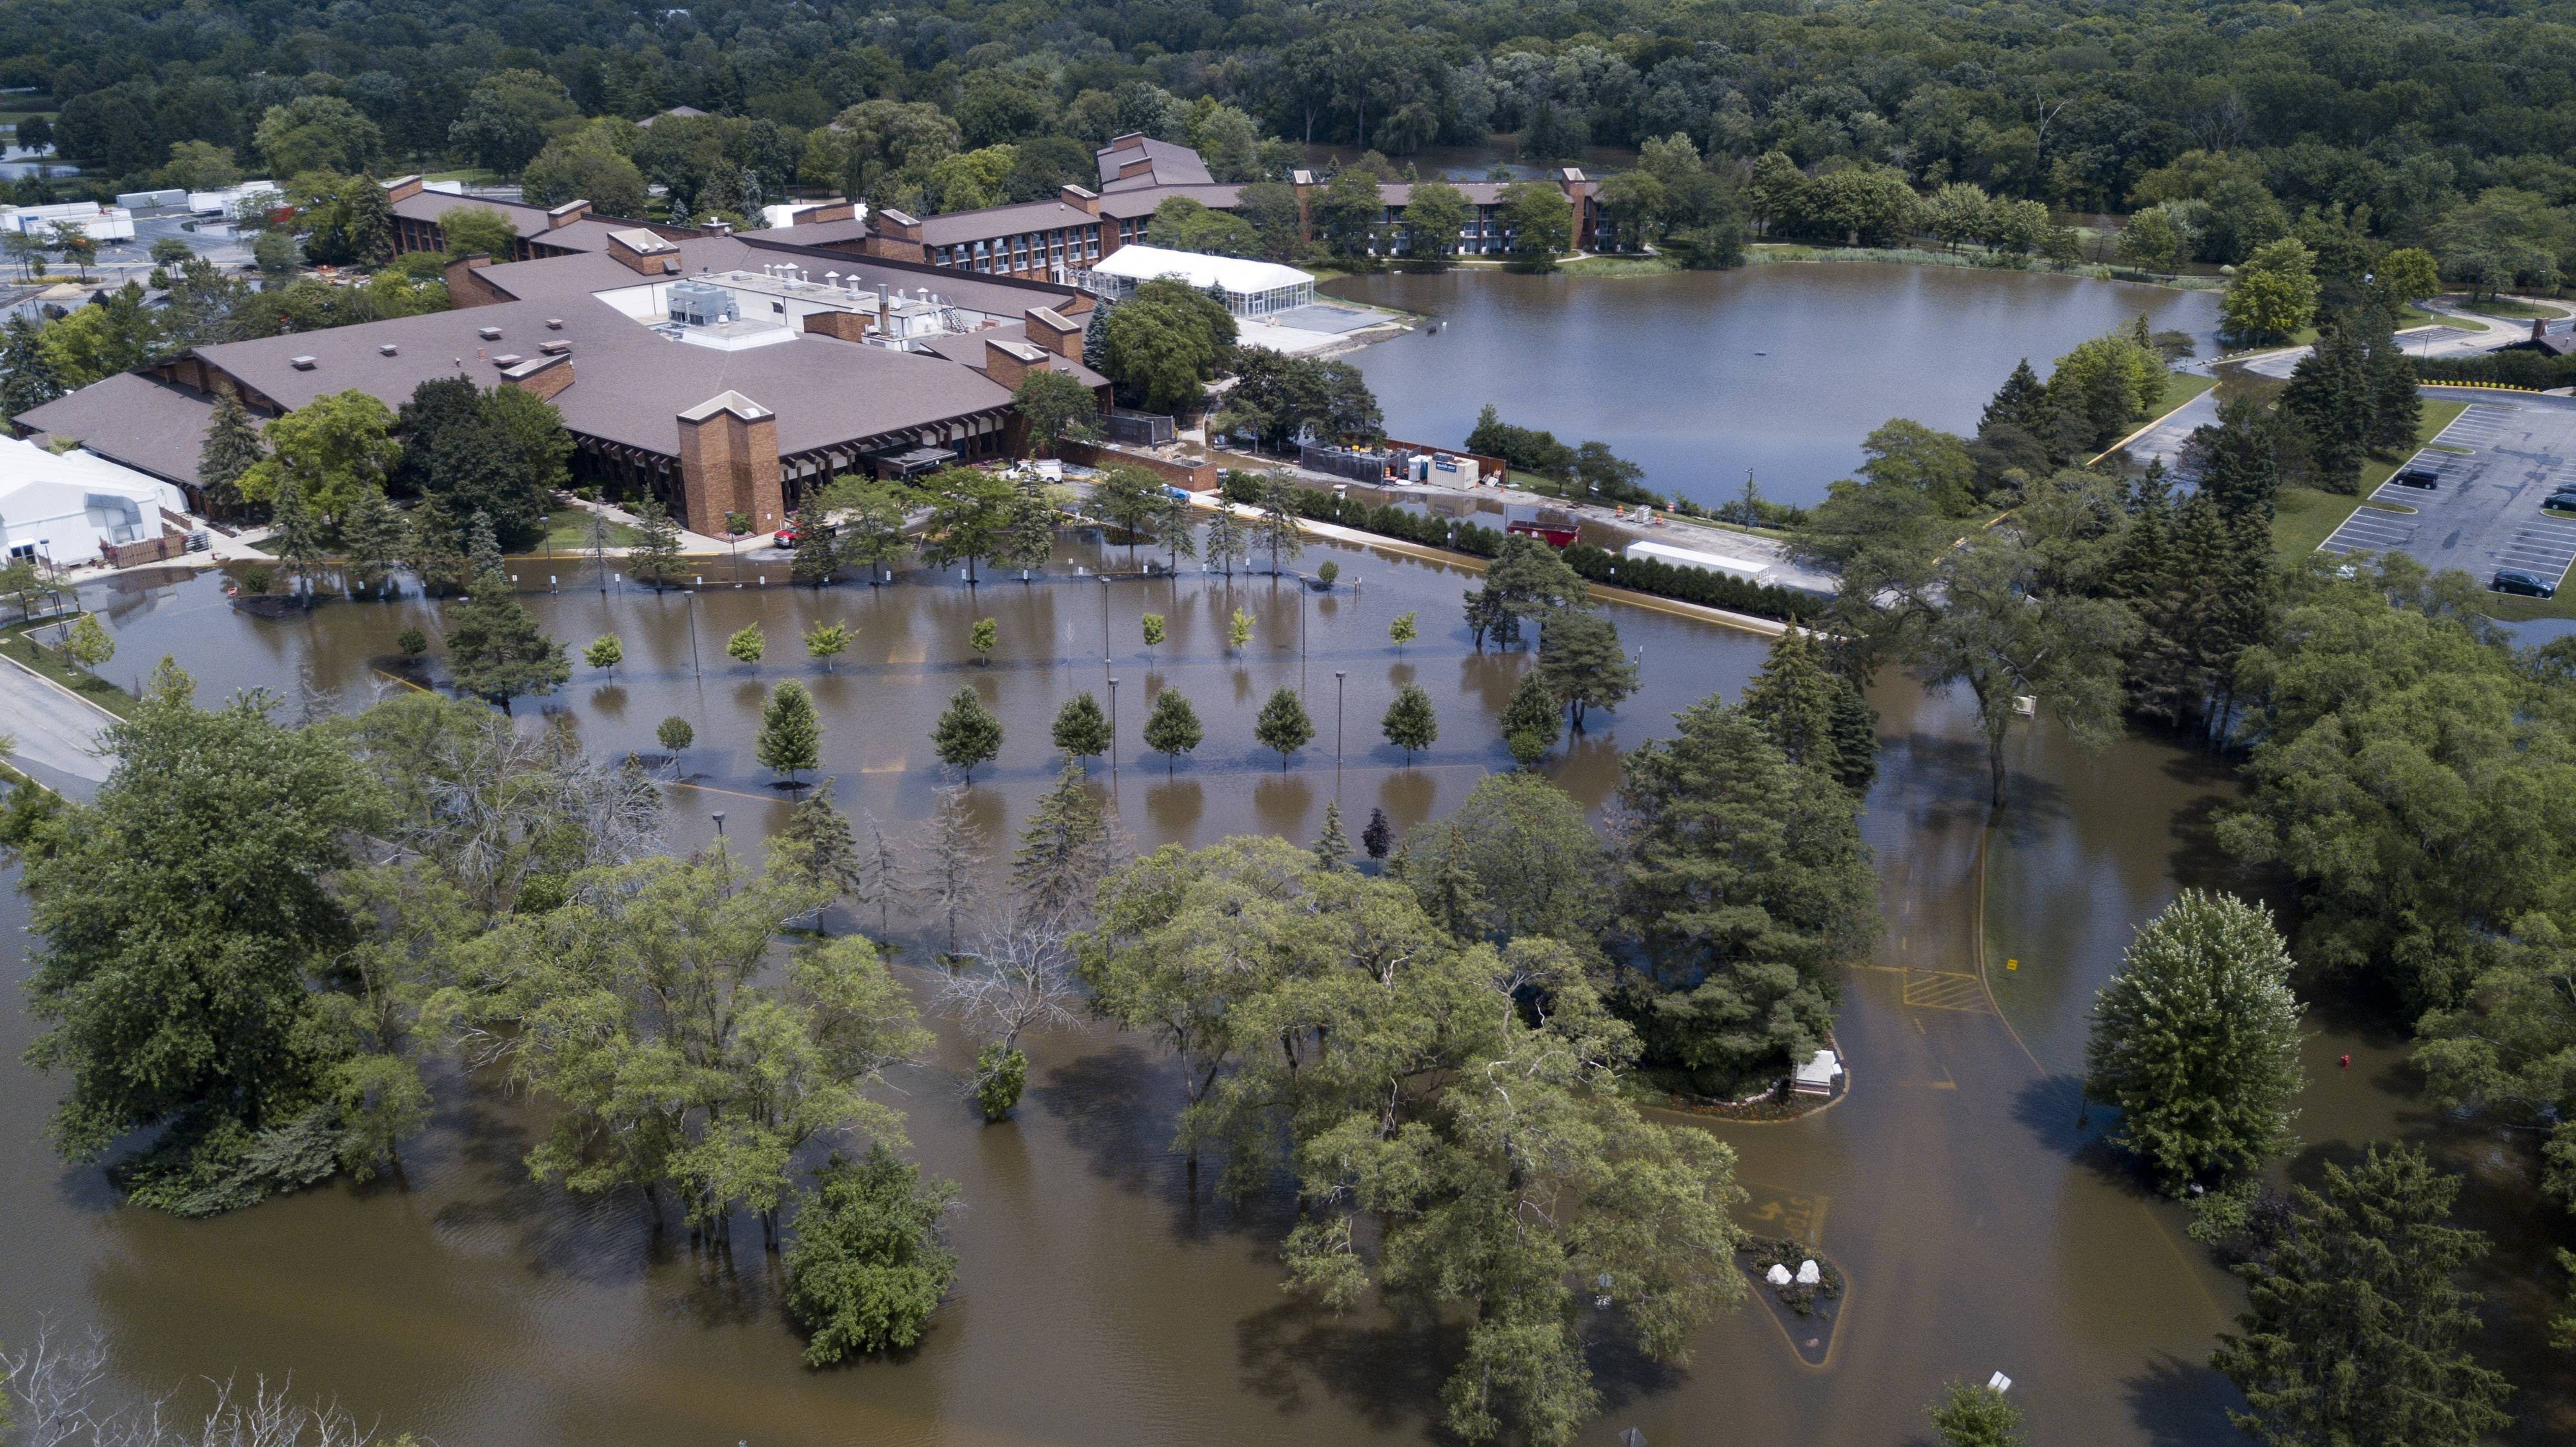 Marriott Theatre audience patiently evacuates while surrounded by flood